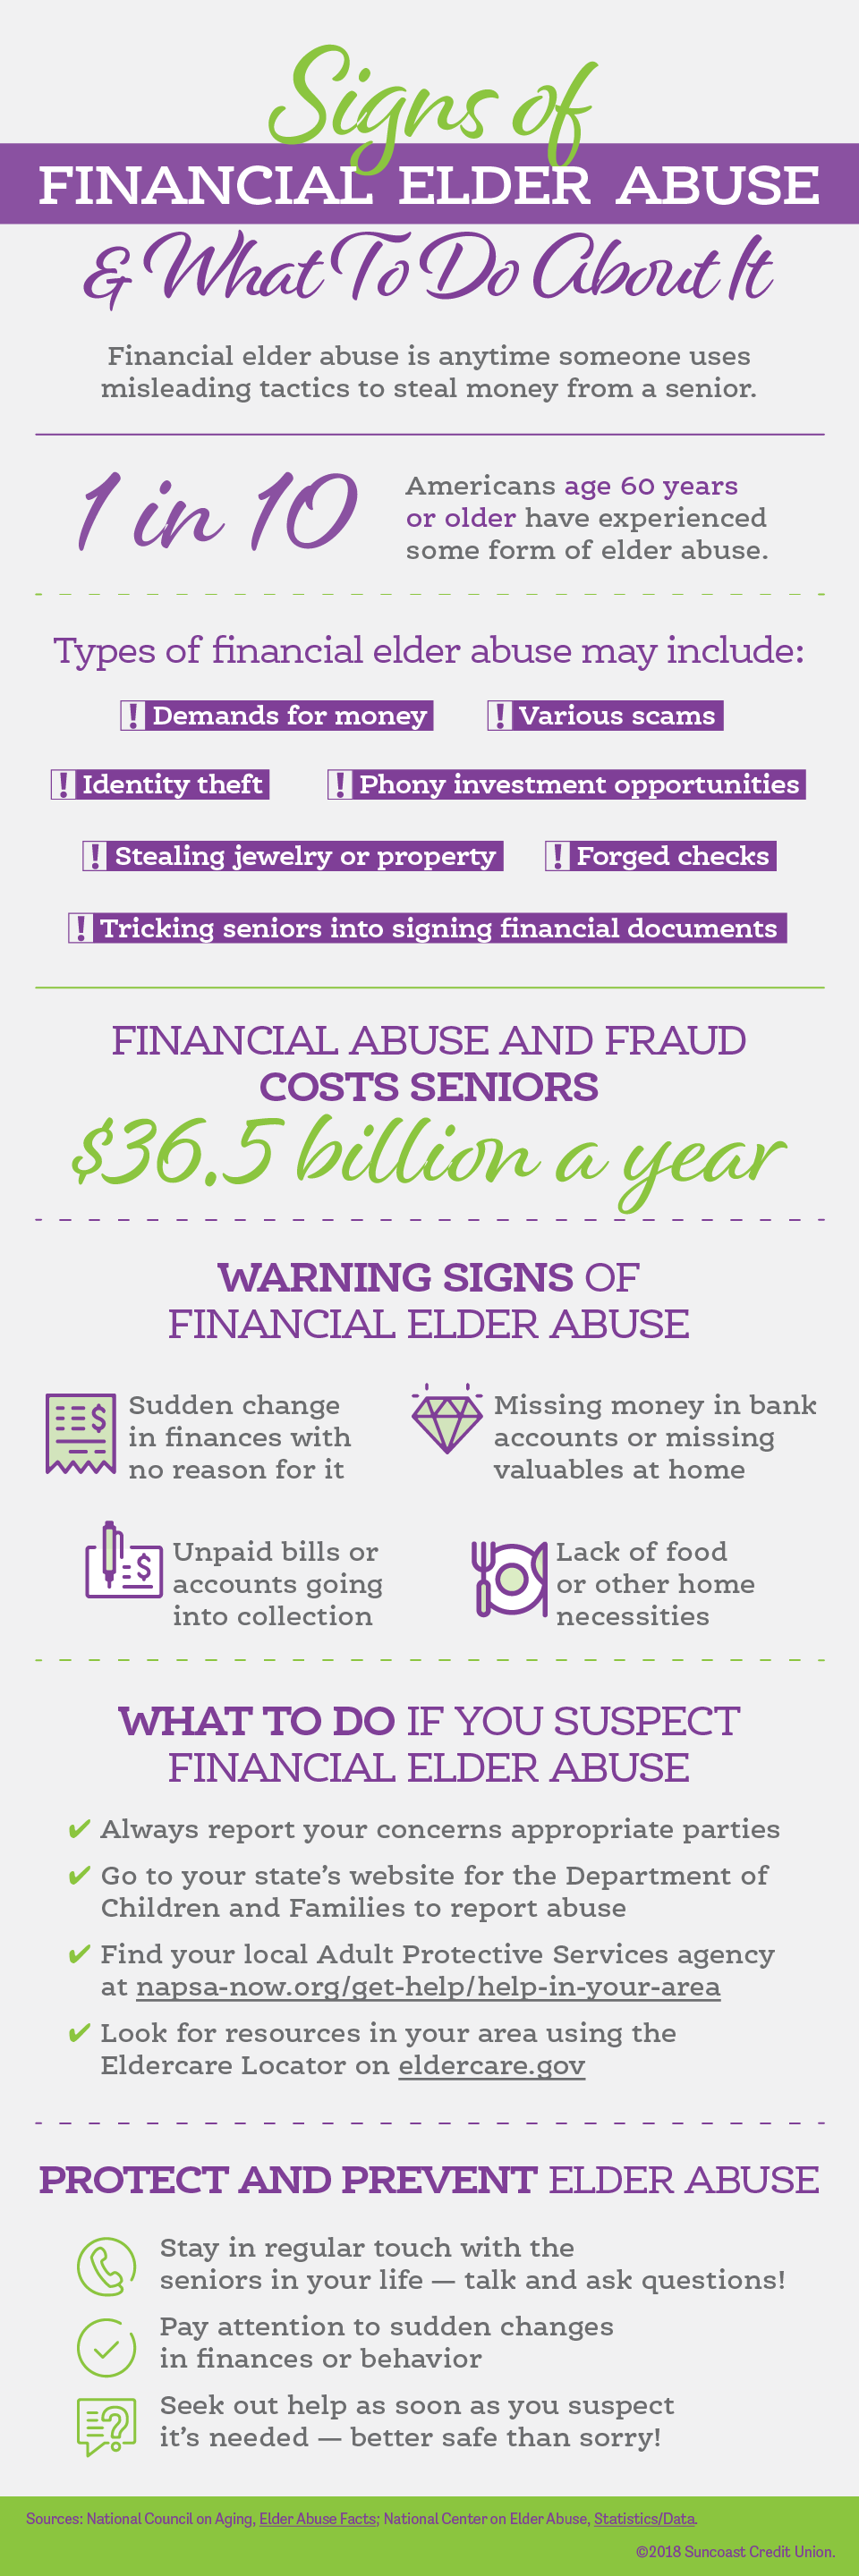 Infographic: Signs of financial elder abuse and what to do about it